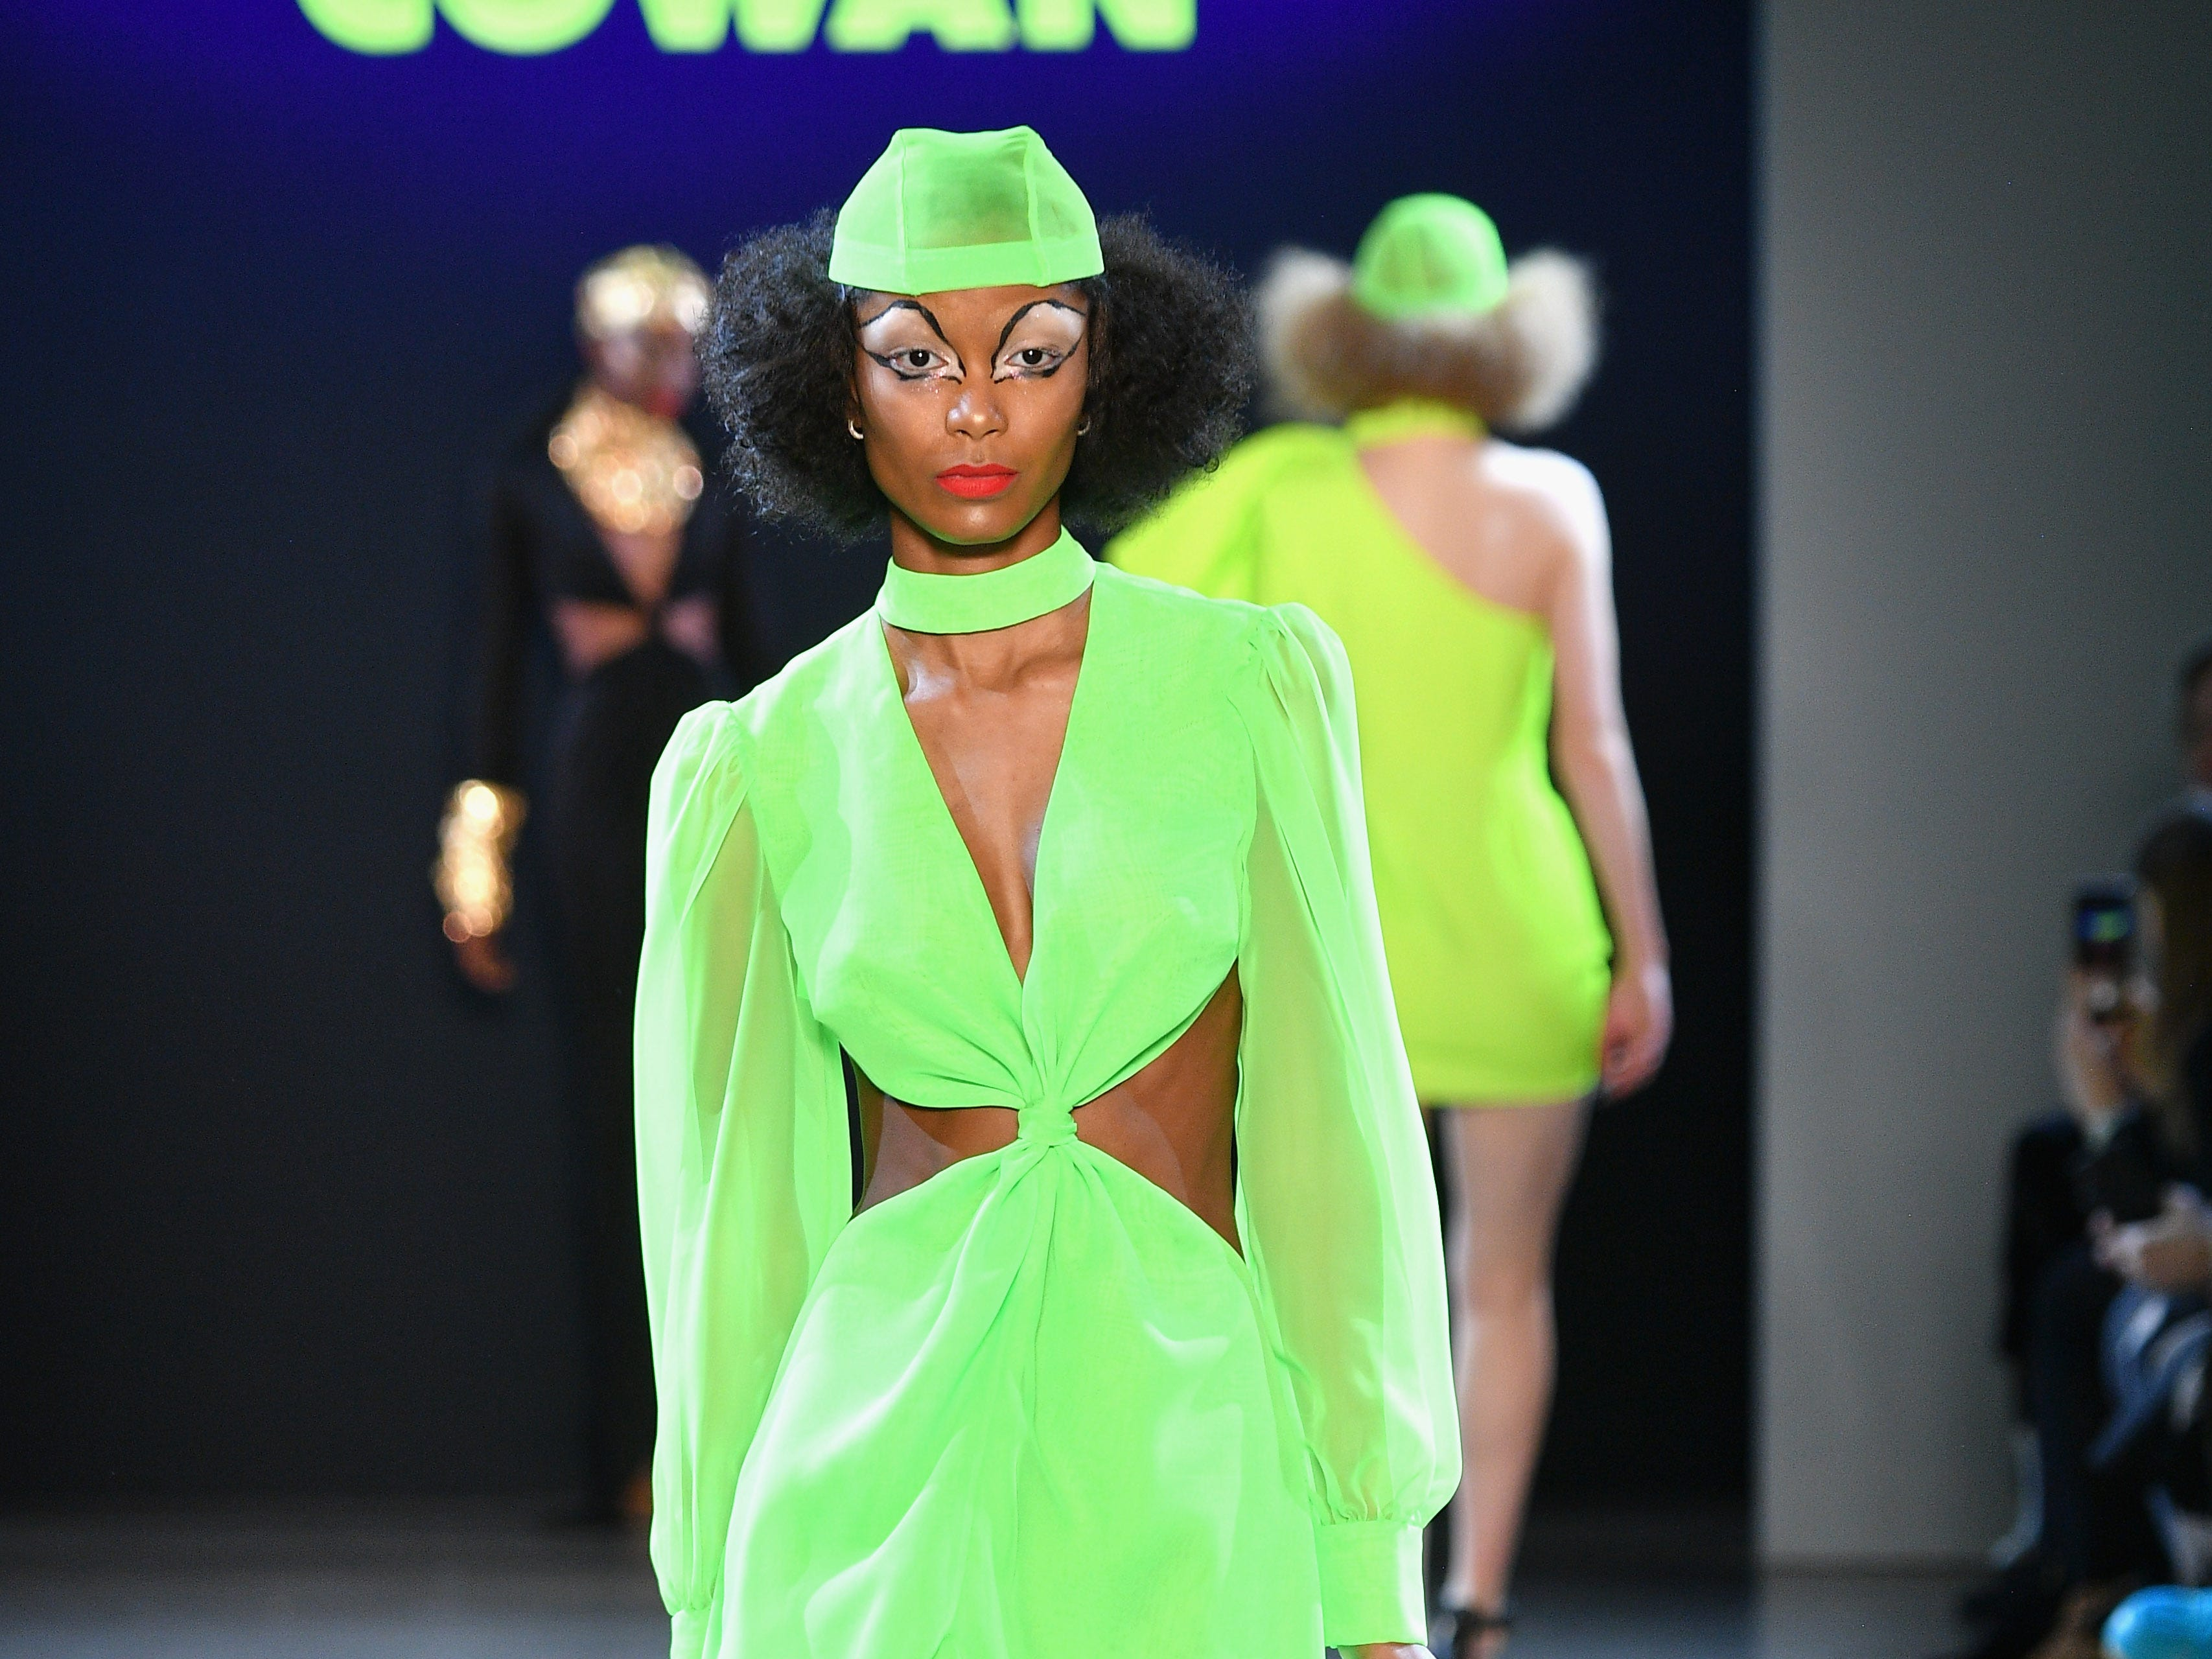 NEW YORK, NY - FEBRUARY 12:  A model walks the runway for the Christian Cowan fashion show during New York Fashion Week: The Shows at Gallery II at Spring Studios on February 12, 2019 in New York City.  (Photo by Dia Dipasupil/Getty Images for NYFW: The Shows) ORG XMIT: 775290958 ORIG FILE ID: 1124278381